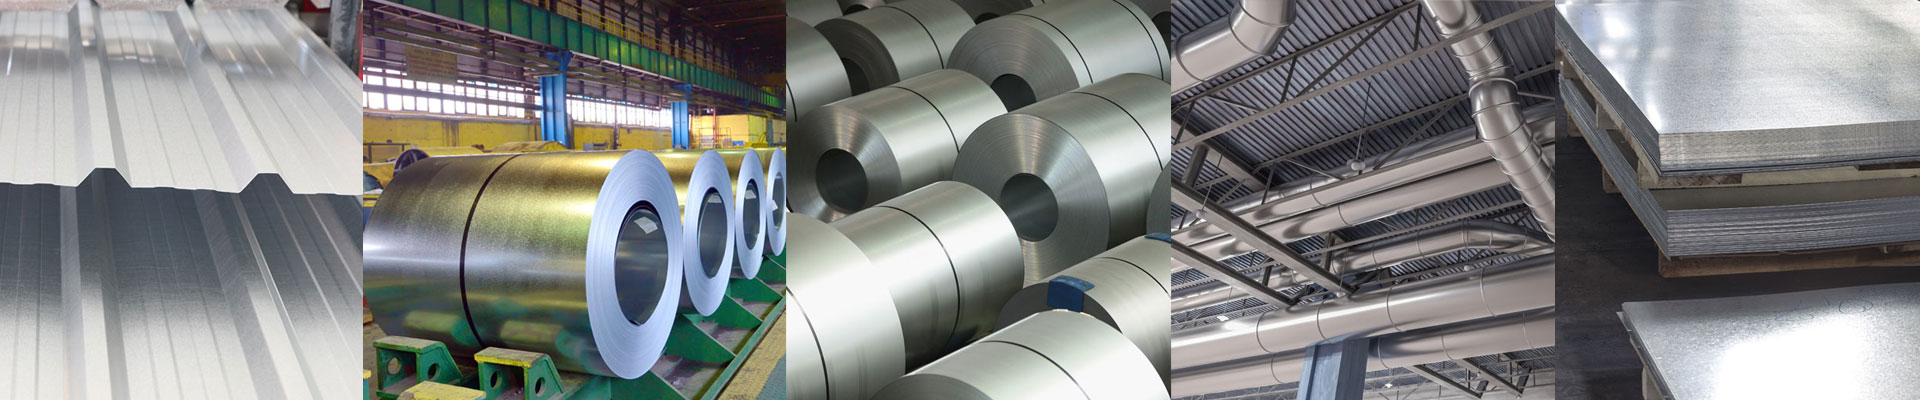 Galvanised-Steel-Sheets-Coils